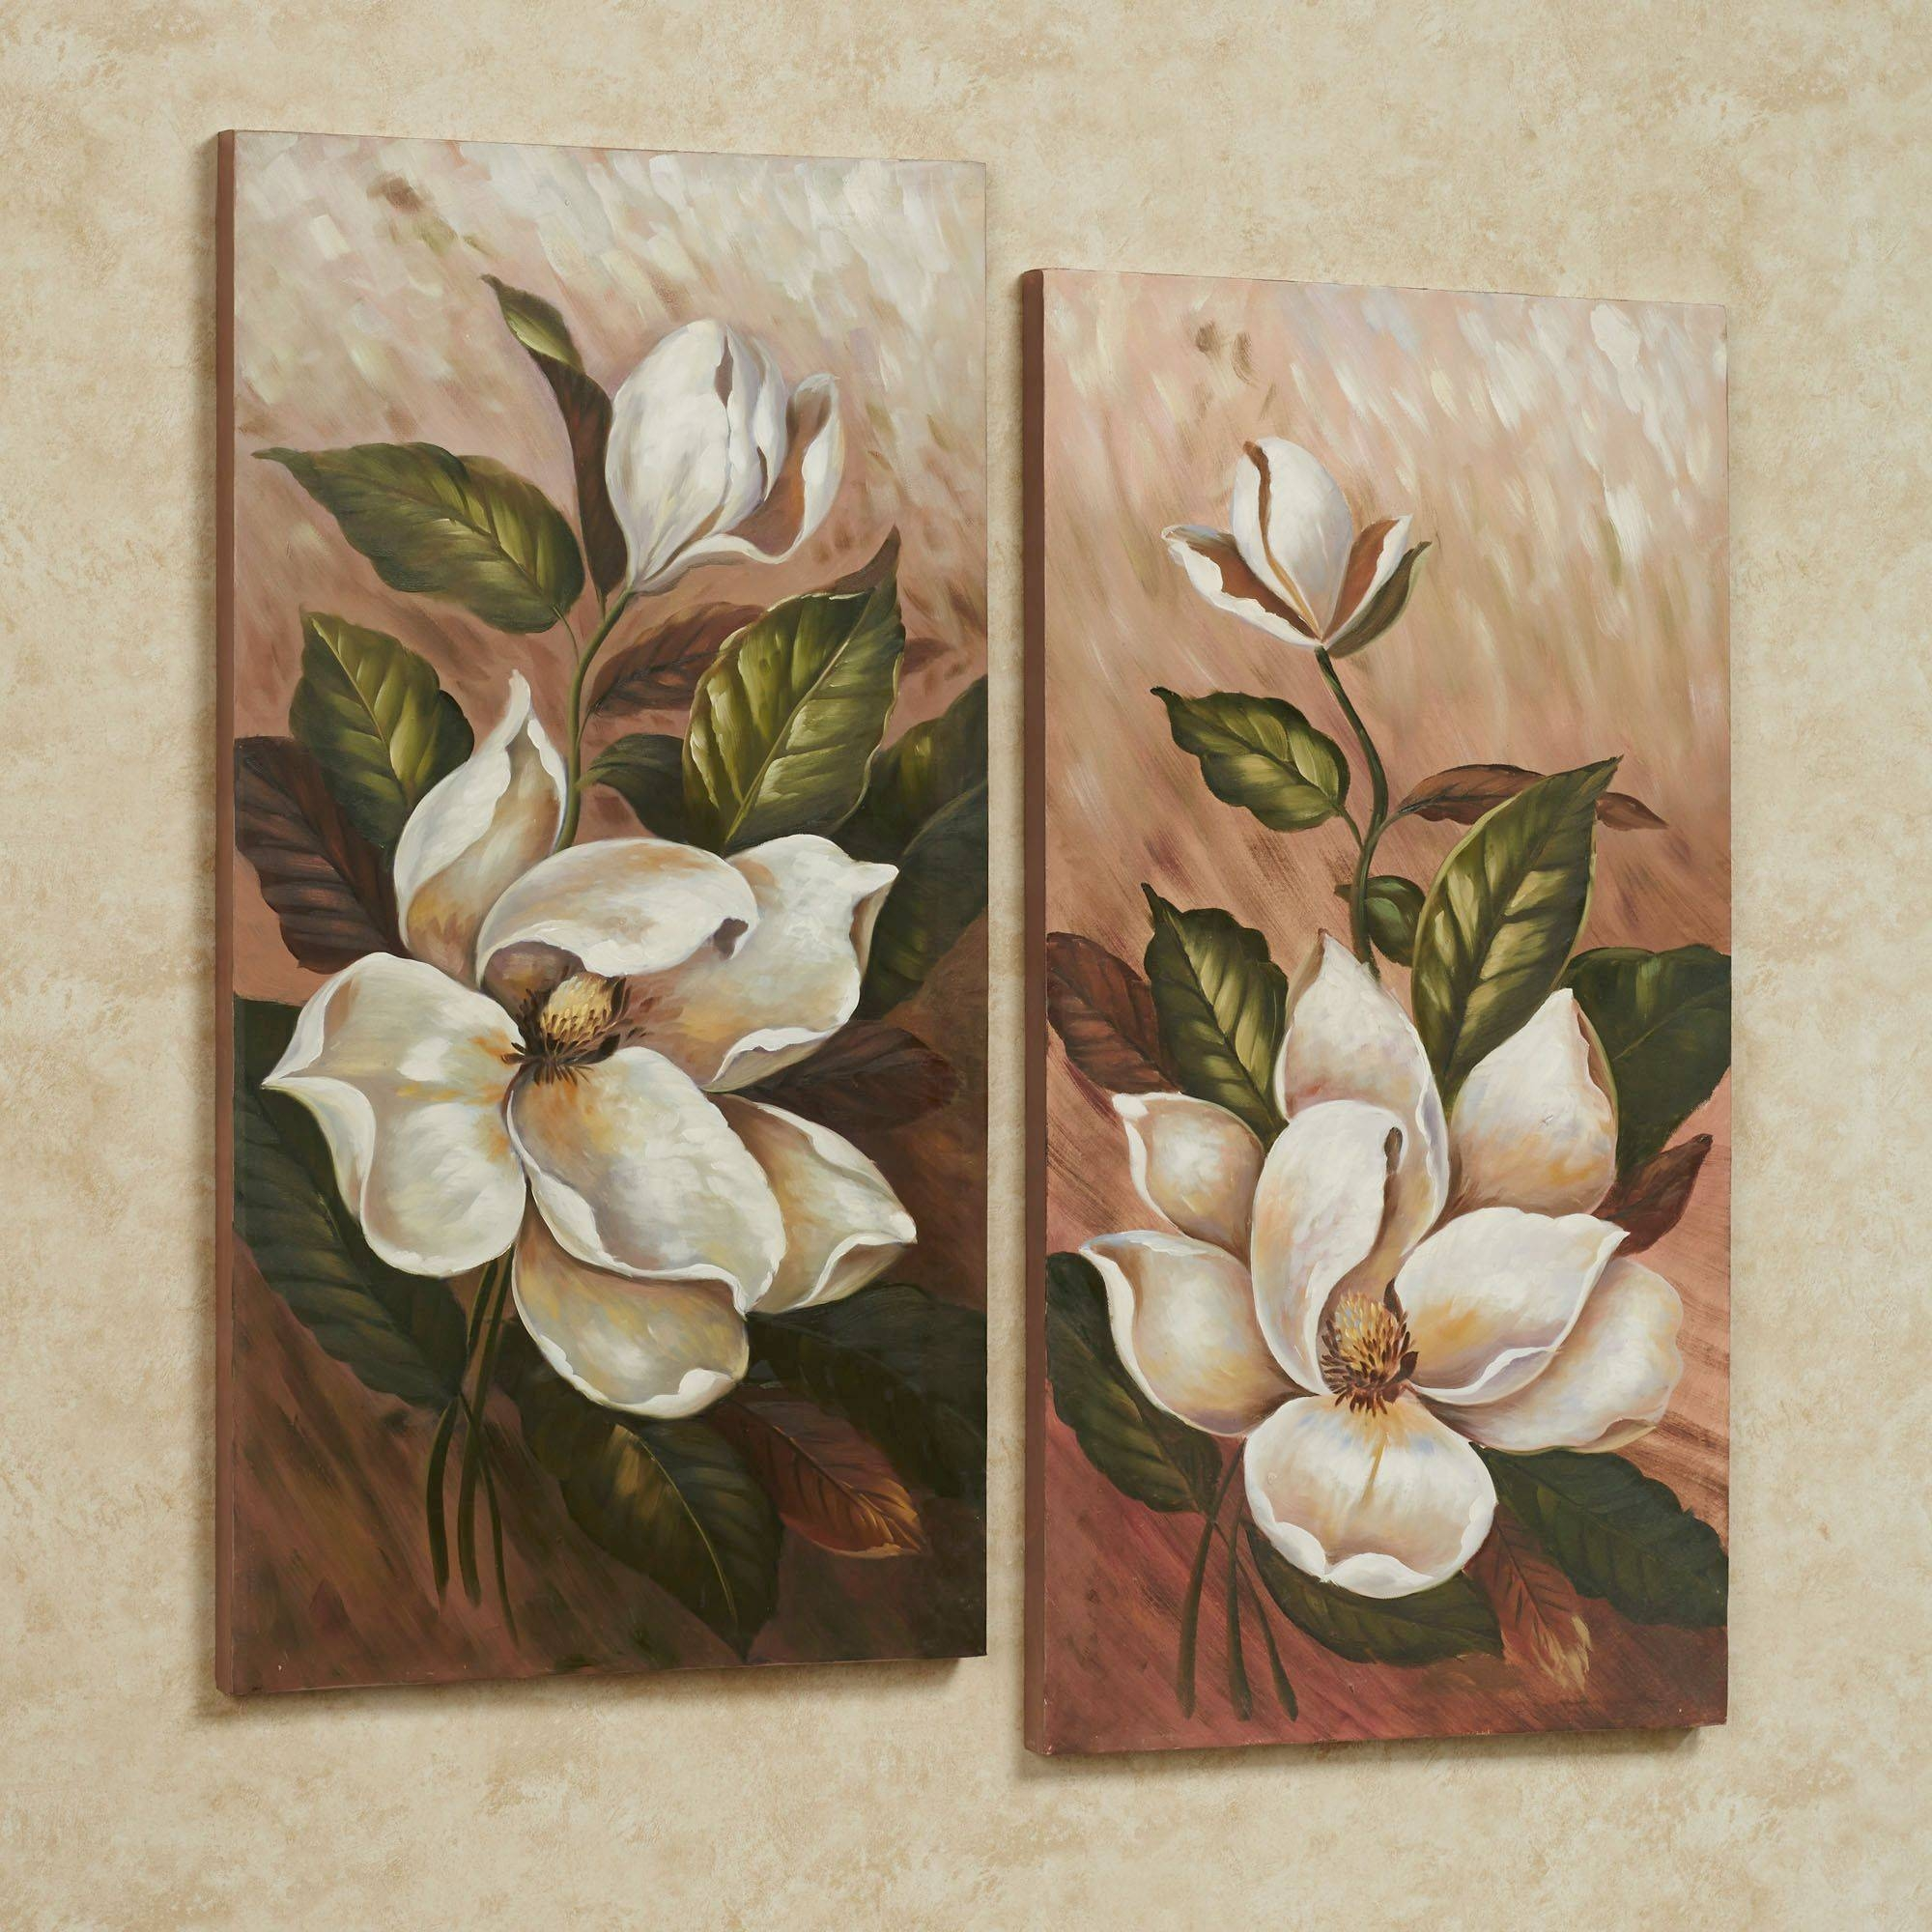 Wall Art Designs: Canvas Wall Art Annalynn Magnolia Wall Art With Best And Newest Floral Wall Art Canvas (View 20 of 20)